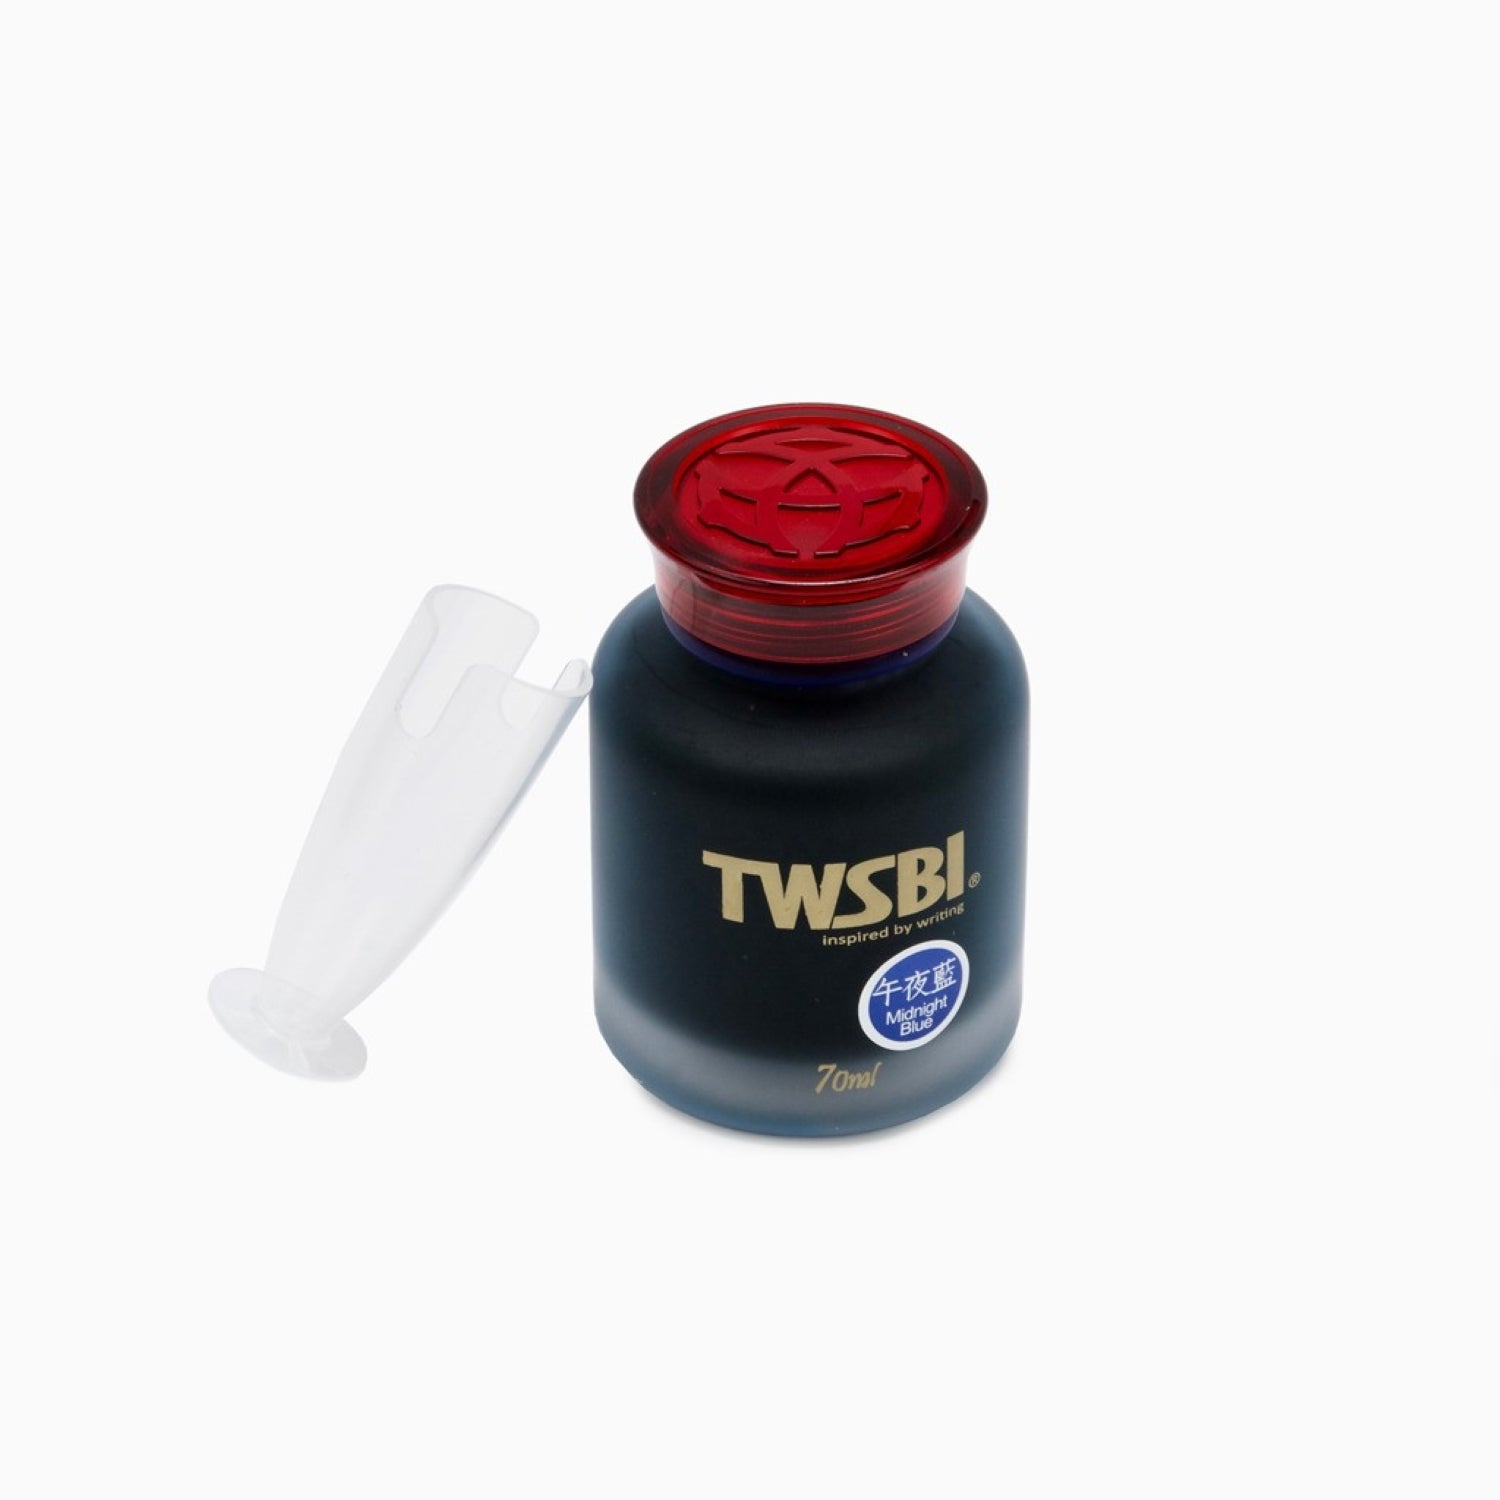 TWSBI Ink - 70ml bottle Midnight Blue